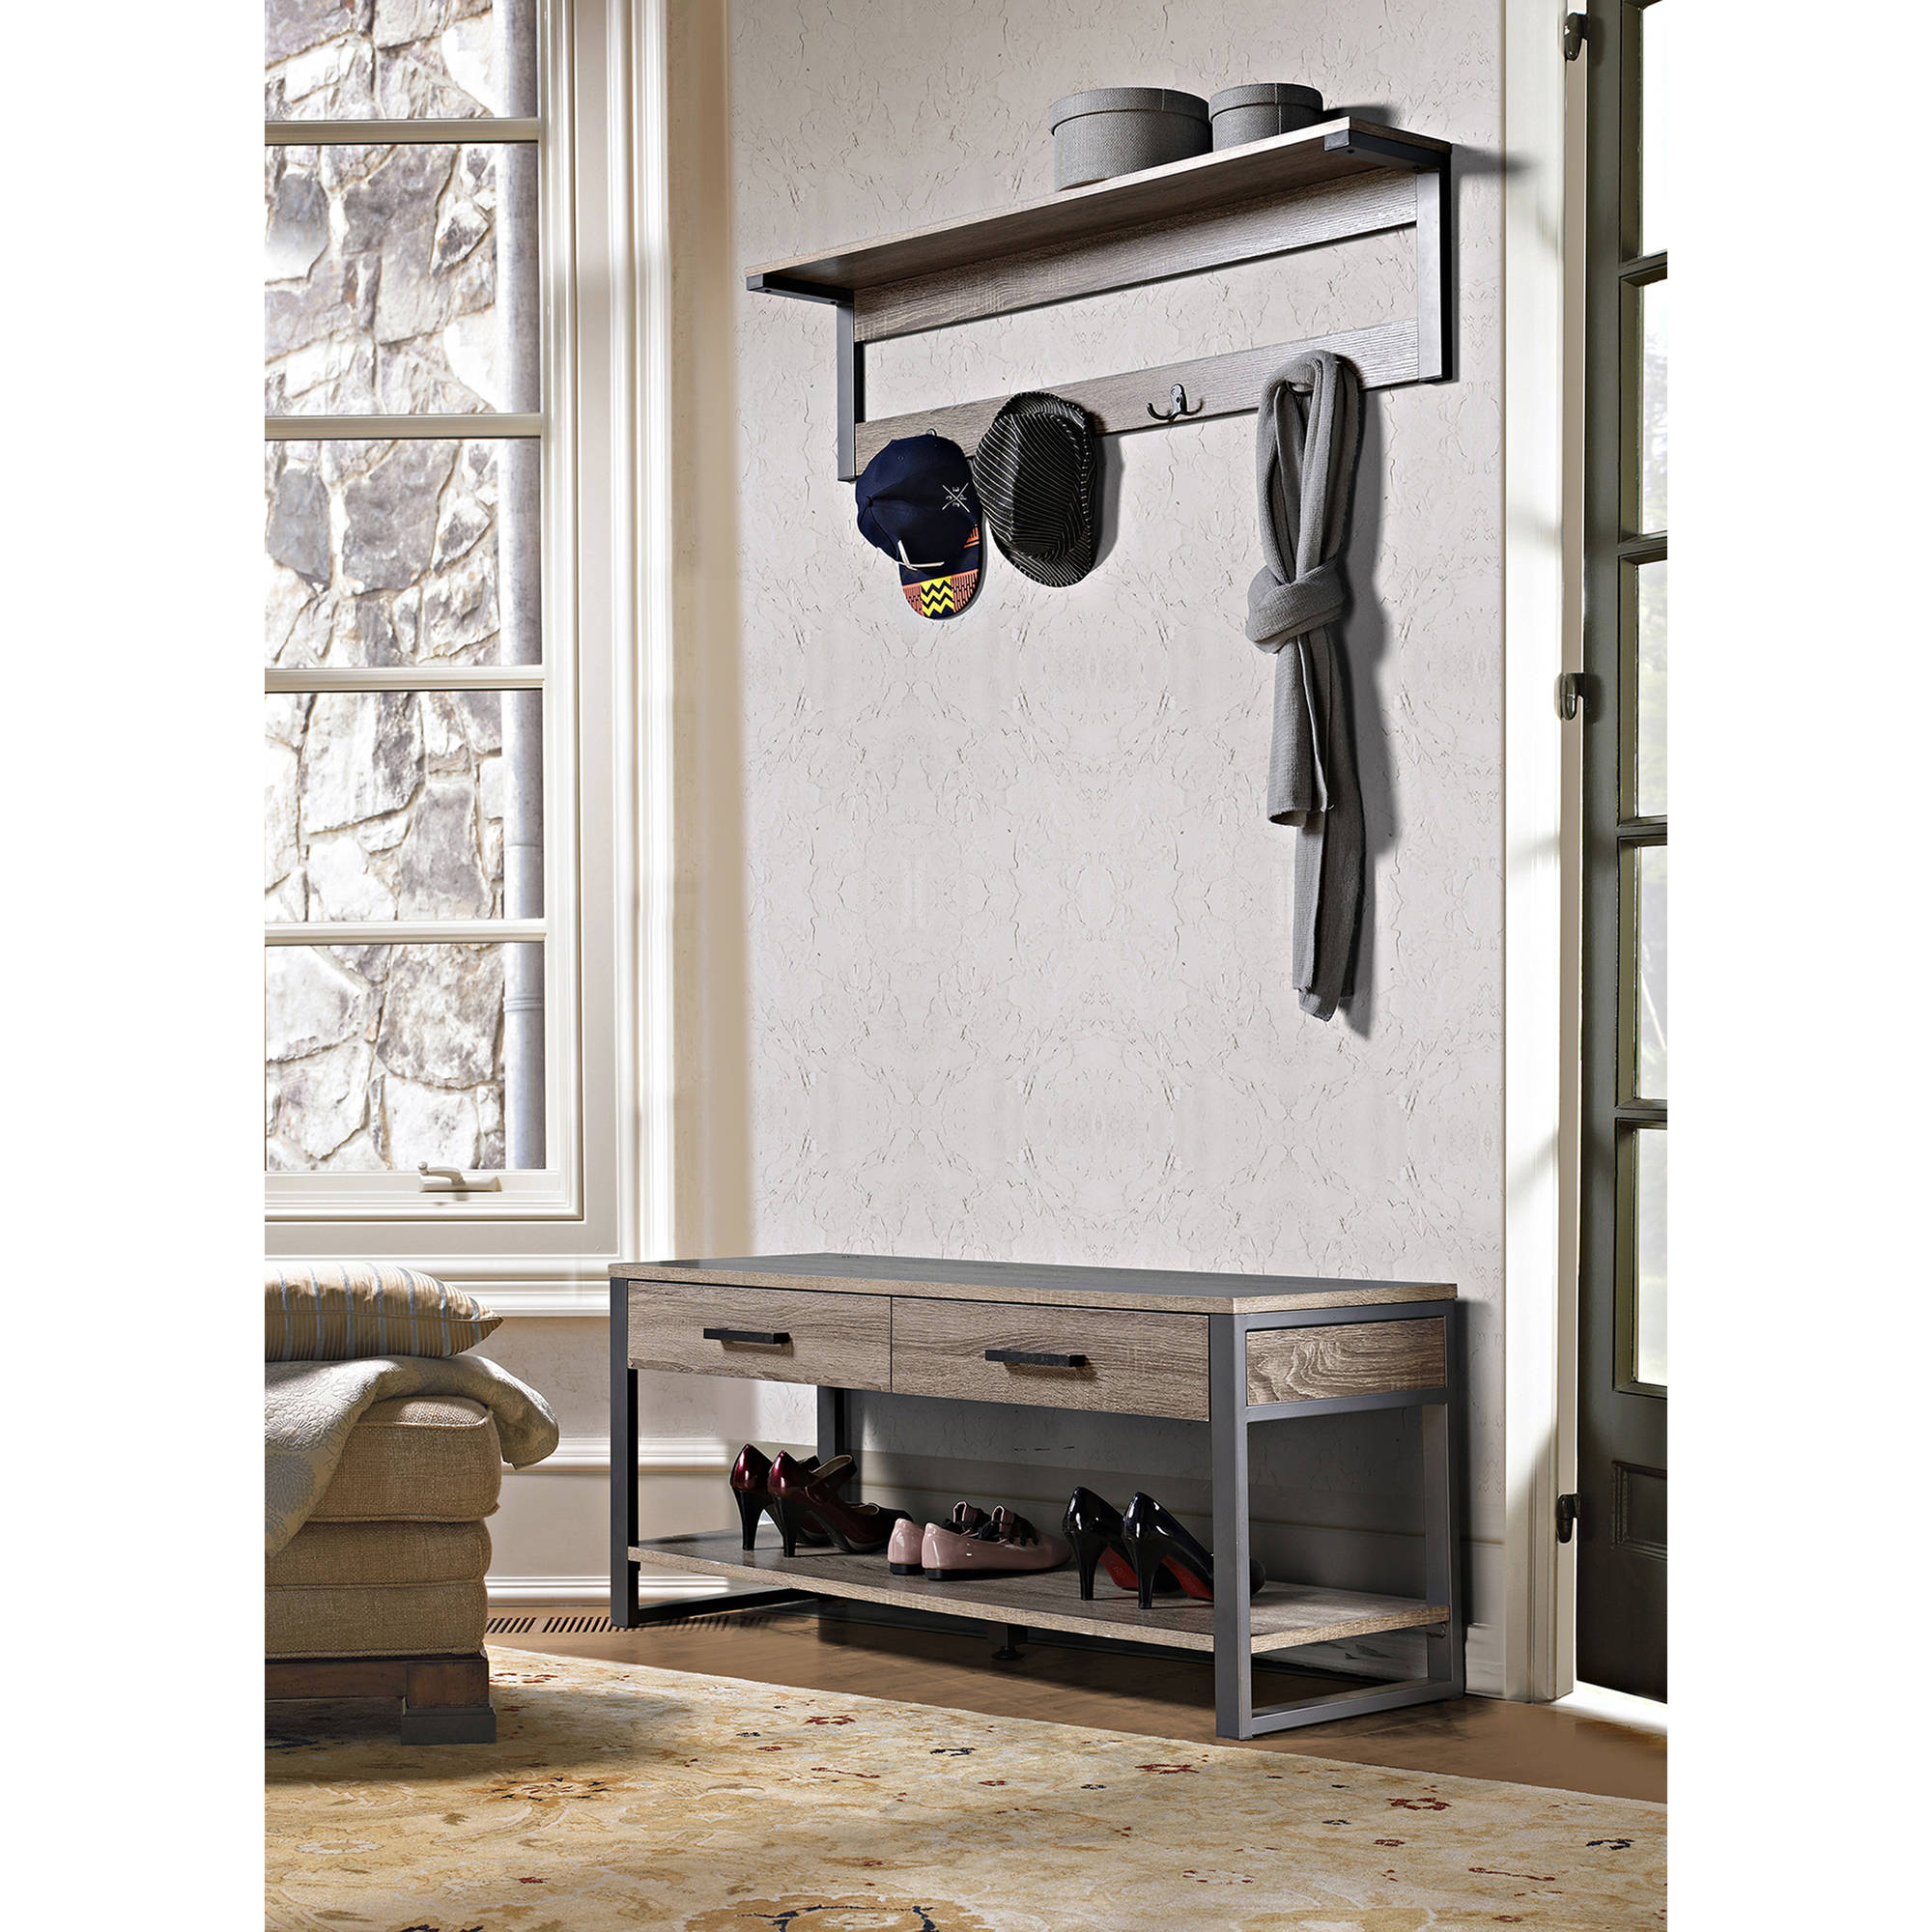 Homestar 2-Drawer/1-Shelf Entry Way Bench